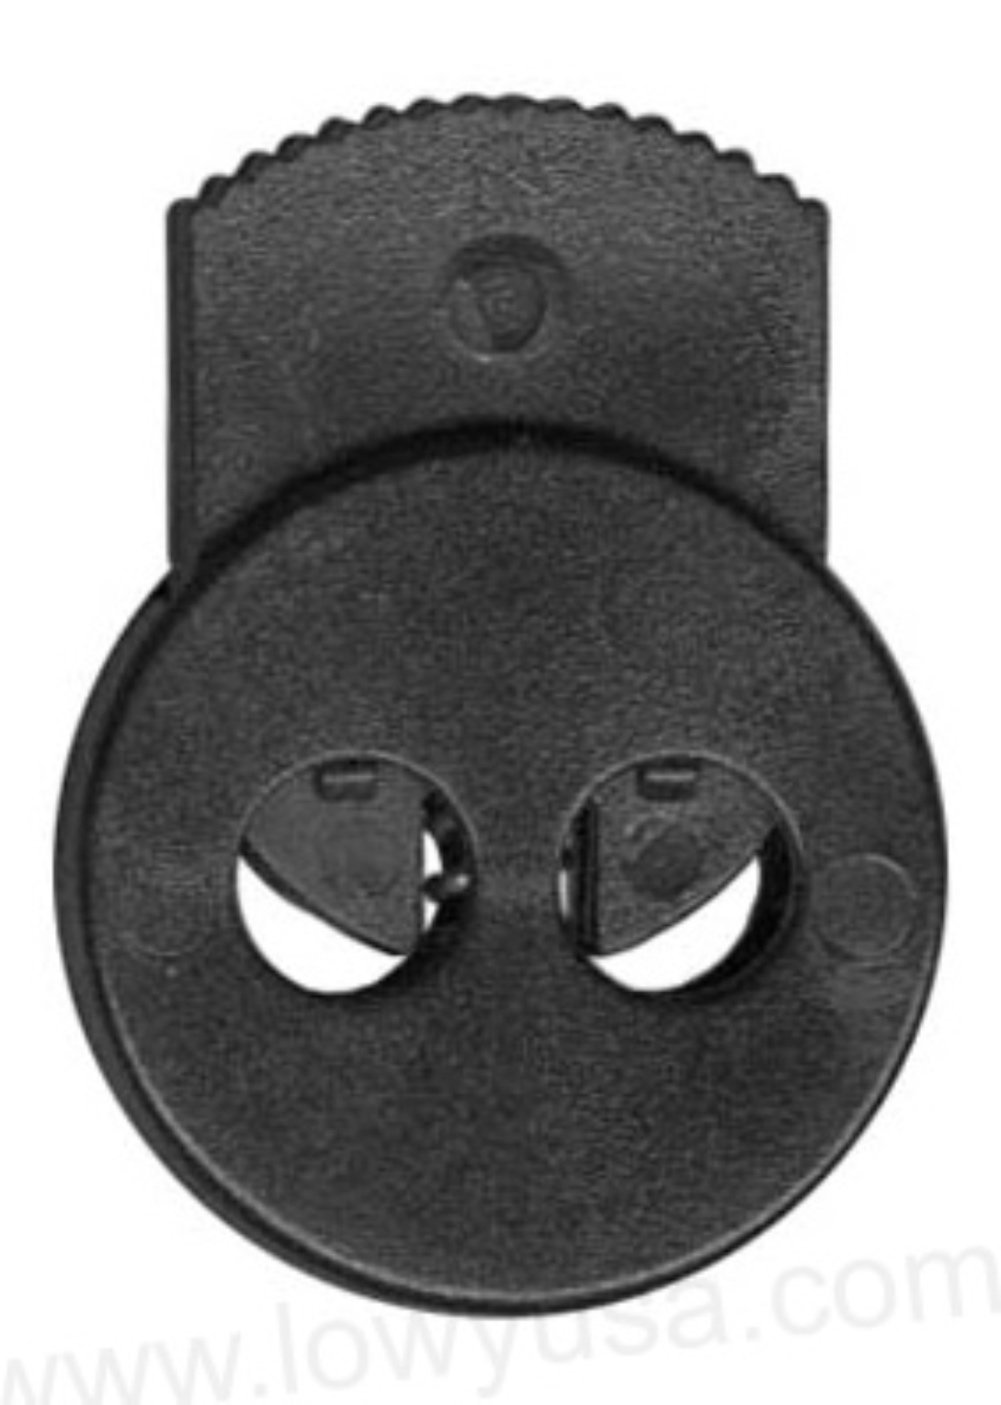 FMS Circle Dual Hold Lock - Dual Hole Cord Lock, Spring Stop, Toggle (10 Pack)(Black) by FMS (Image #1)